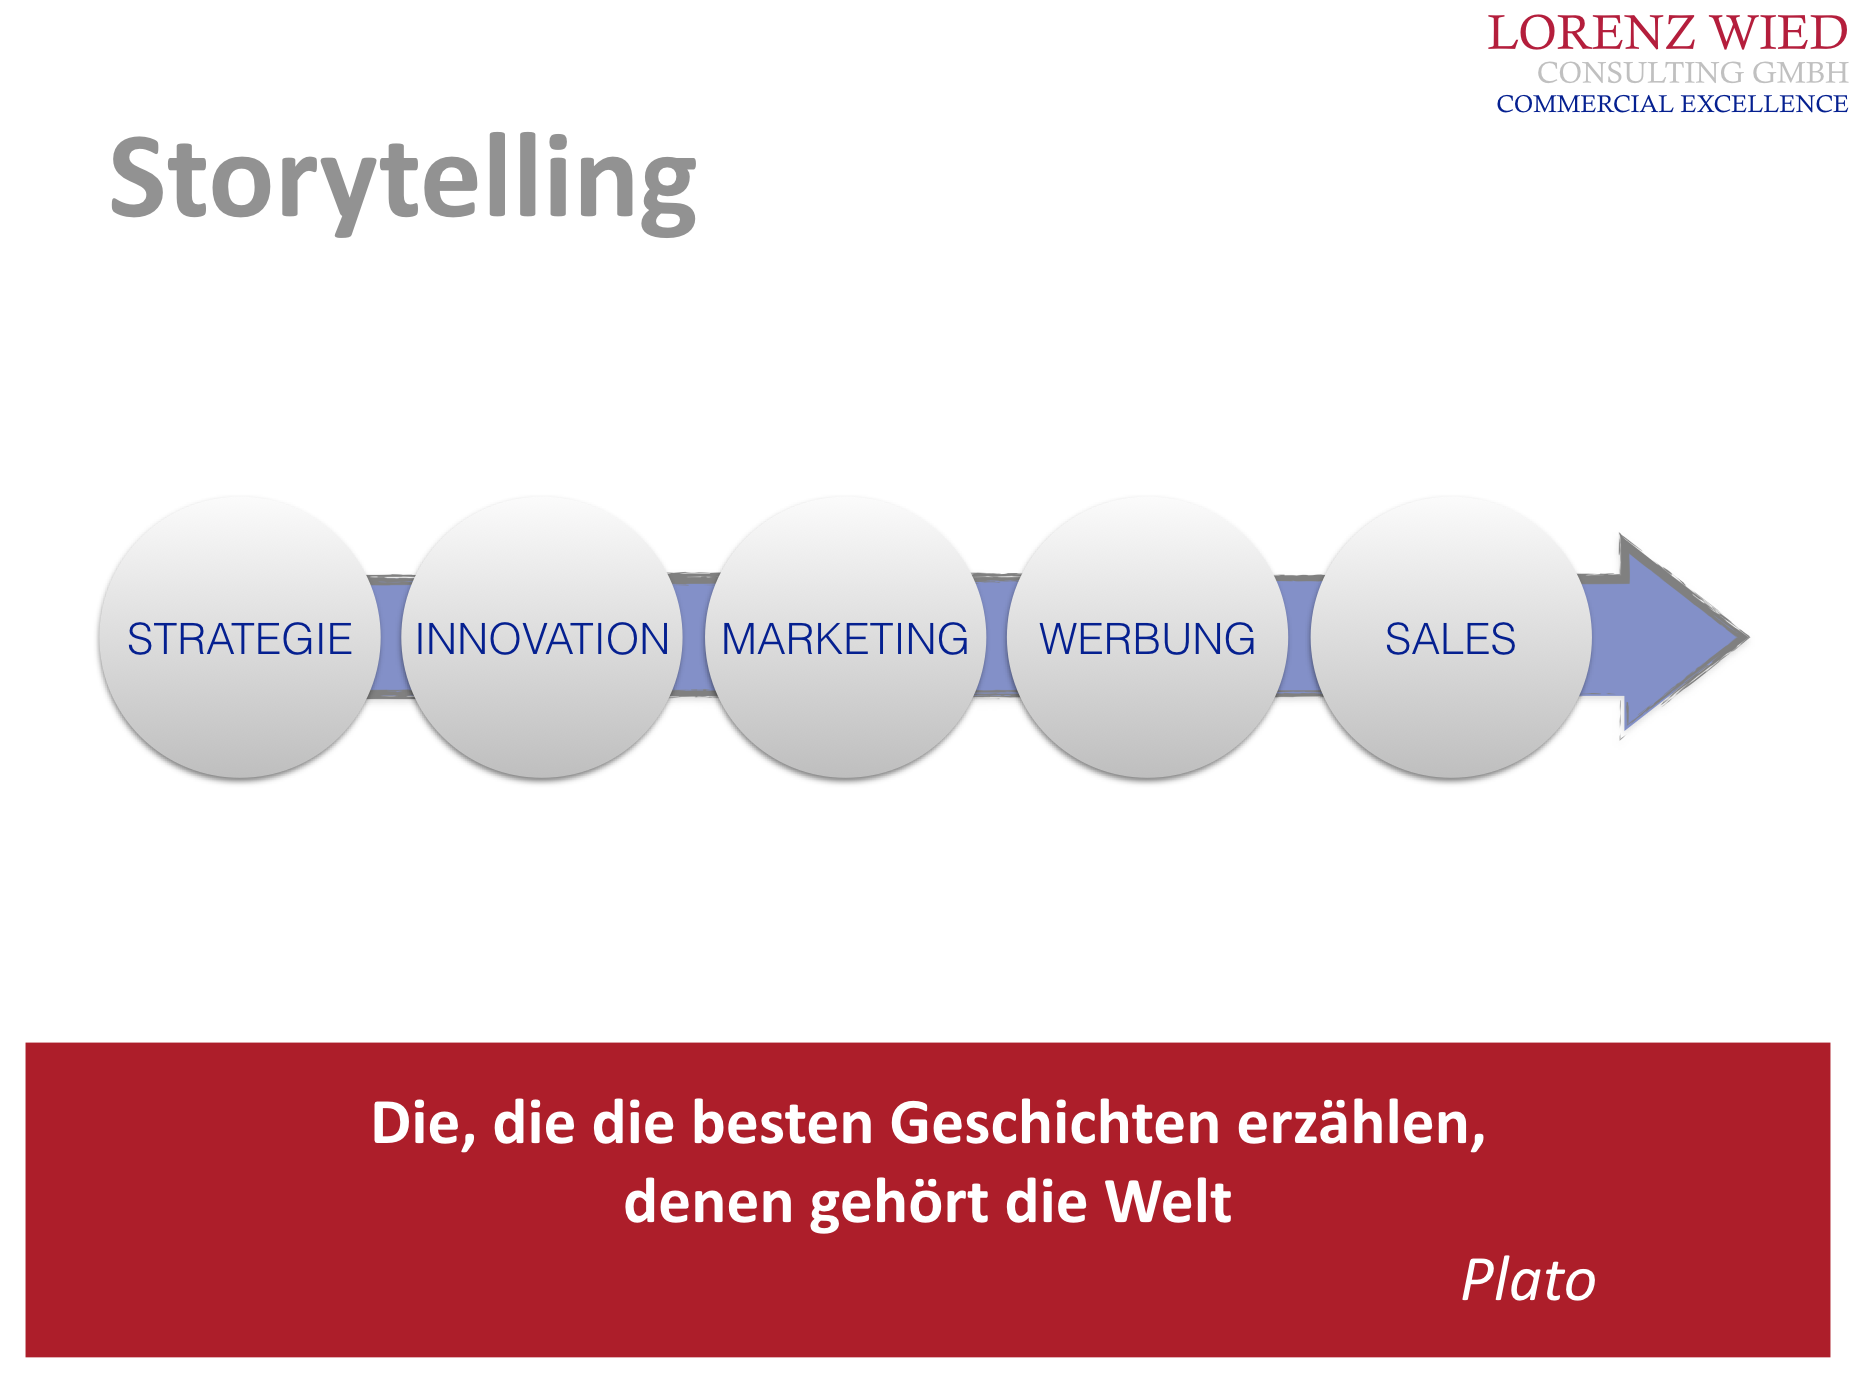 Storytelling - Positioning - Mag. Lorenz Wied MBA - Linz